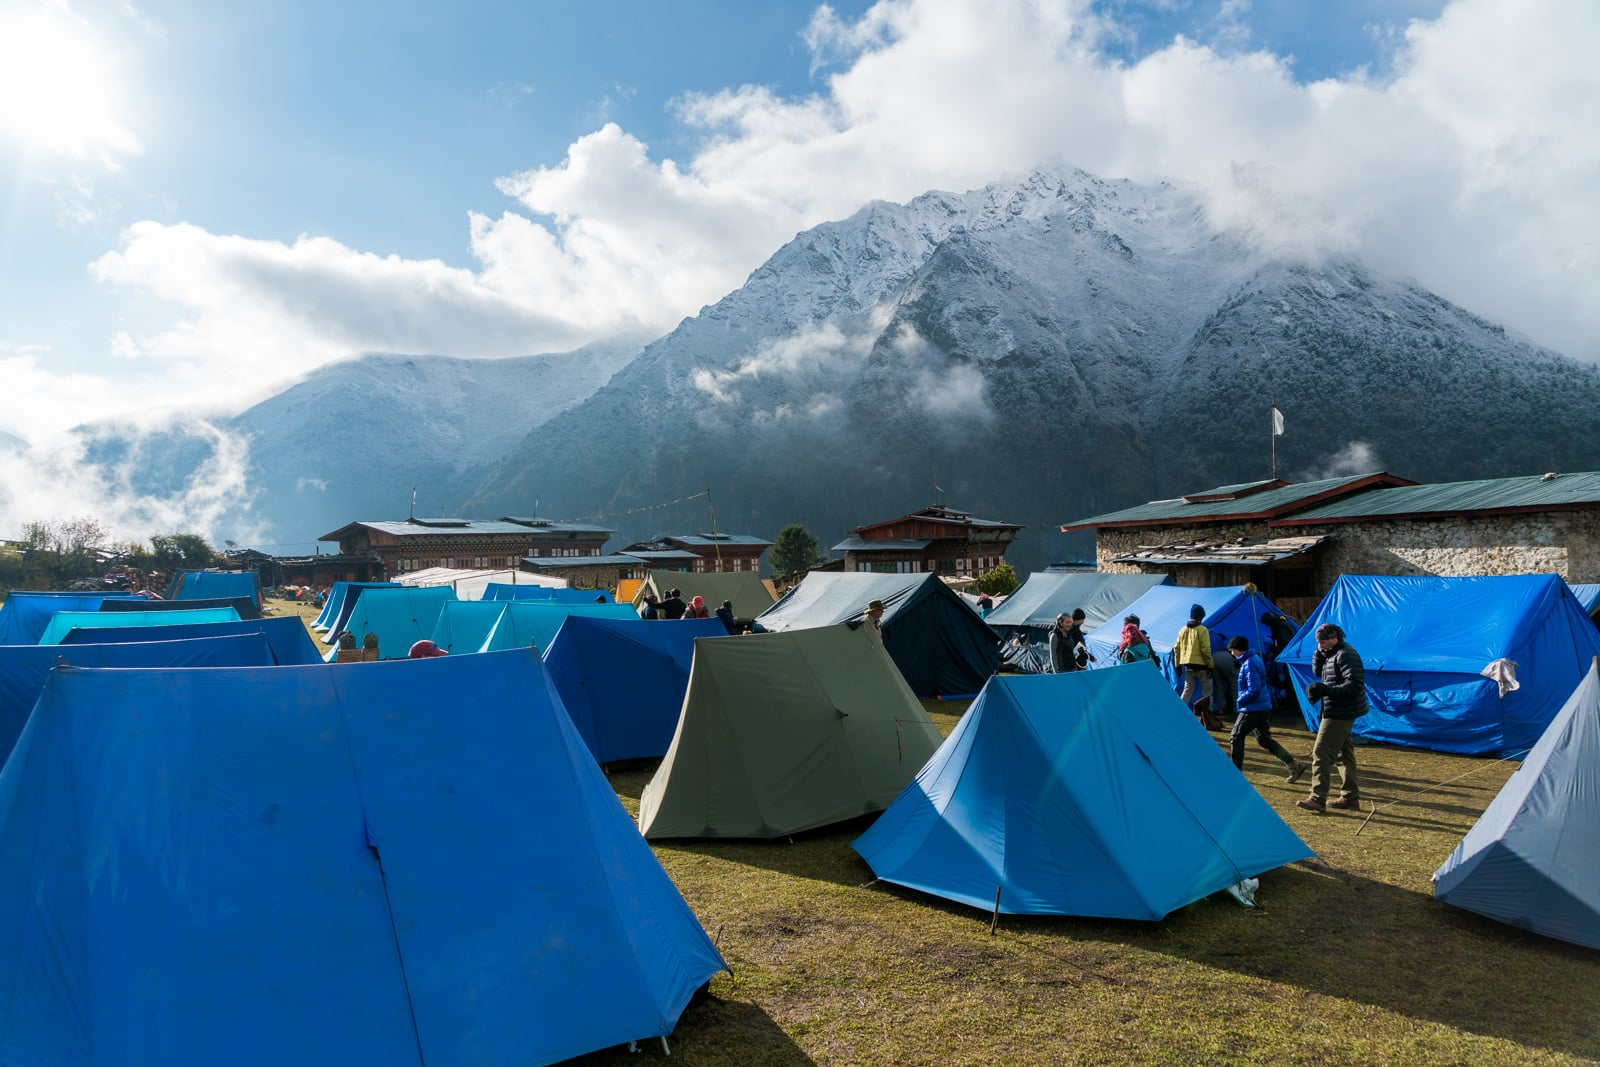 How to get to the Royal Highlander Festival in Bhutan - A tour company's tent camp in Laya - Lost With Purpose travel blog